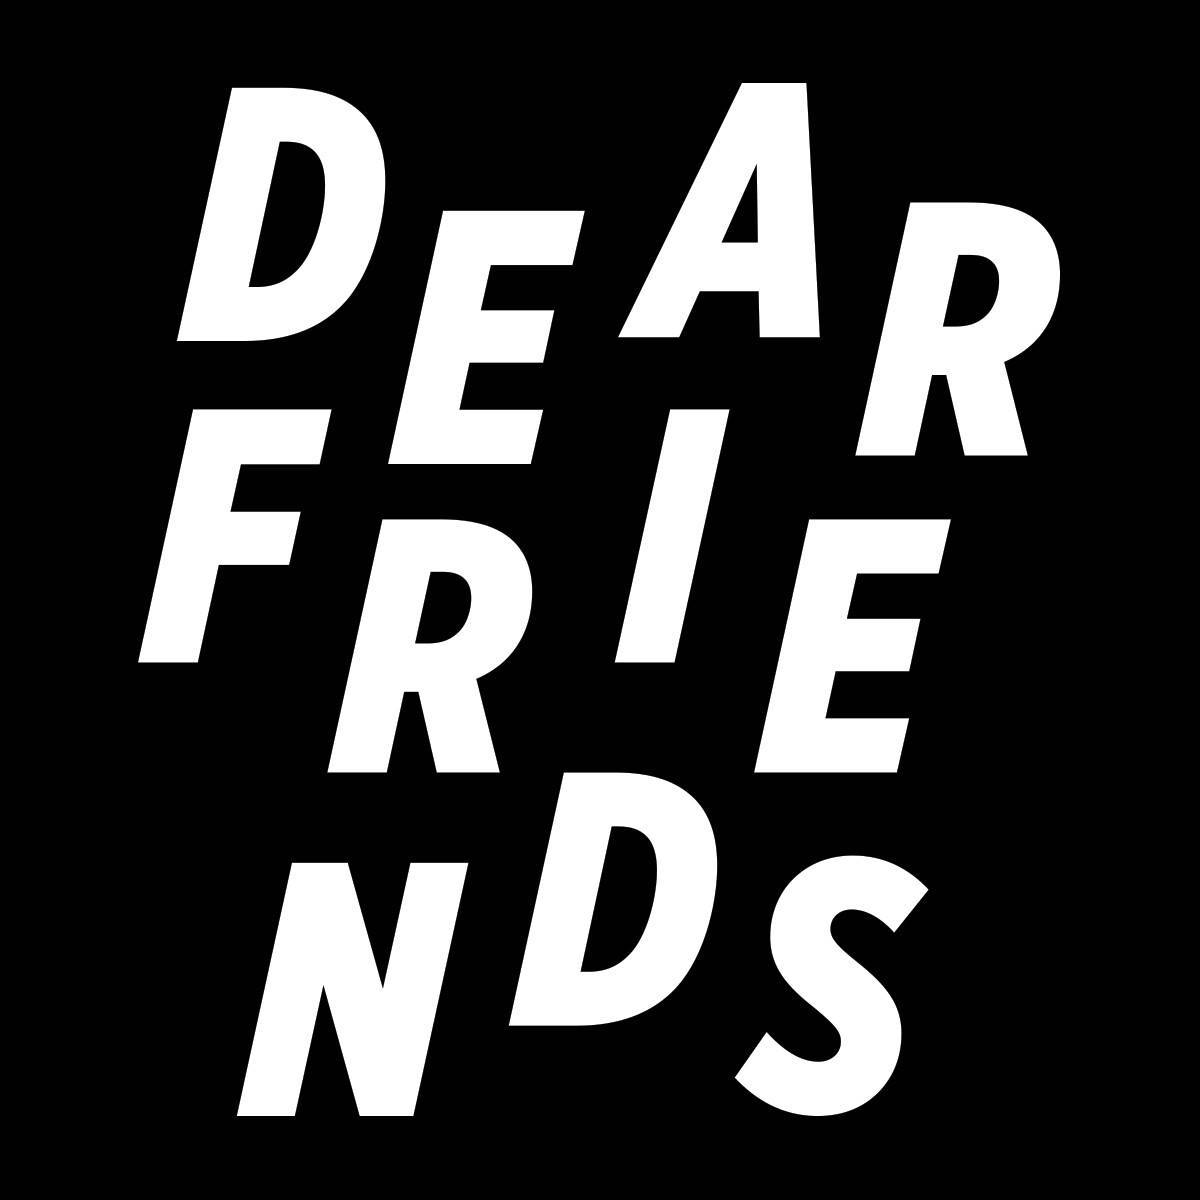 Dear friends – cultural